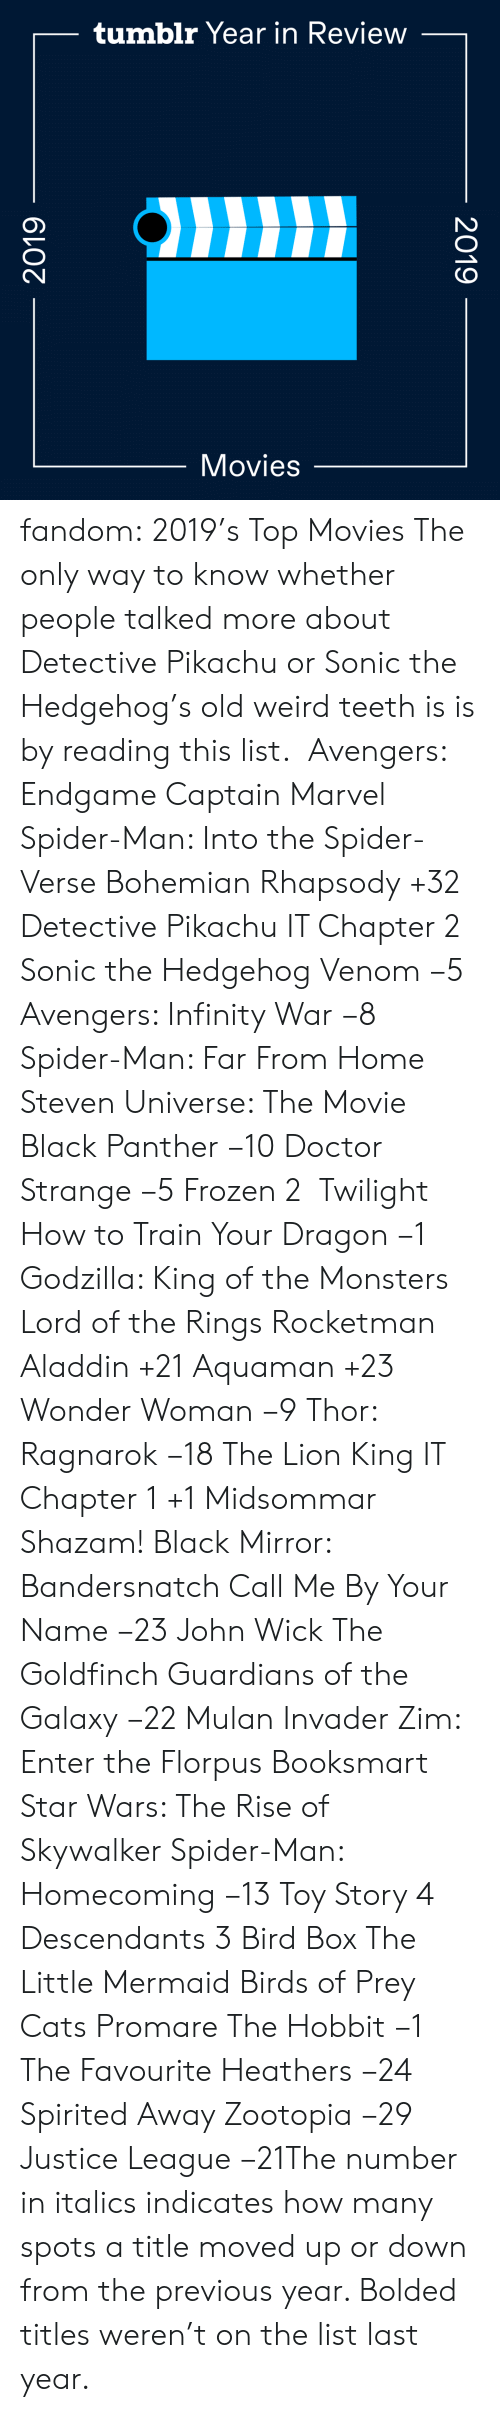 Is Is: tumblr Year in Review  Movies  2019  2019 fandom:  2019's Top Movies  The only way to know whether people talked more about Detective Pikachu or Sonic the Hedgehog's old weird teeth is is by reading this list.   Avengers: Endgame  Captain Marvel  Spider-Man: Into the Spider-Verse  Bohemian Rhapsody +32  Detective Pikachu  IT Chapter 2  Sonic the Hedgehog  Venom −5  Avengers: Infinity War −8  Spider-Man: Far From Home  Steven Universe: The Movie  Black Panther −10  Doctor Strange −5  Frozen 2   Twilight  How to Train Your Dragon −1  Godzilla: King of the Monsters  Lord of the Rings  Rocketman  Aladdin +21  Aquaman +23  Wonder Woman −9  Thor: Ragnarok −18  The Lion King  IT Chapter 1 +1  Midsommar  Shazam!  Black Mirror: Bandersnatch  Call Me By Your Name −23  John Wick  The Goldfinch  Guardians of the Galaxy −22  Mulan  Invader Zim: Enter the Florpus  Booksmart  Star Wars: The Rise of Skywalker  Spider-Man: Homecoming −13  Toy Story 4  Descendants 3  Bird Box  The Little Mermaid  Birds of Prey  Cats  Promare  The Hobbit −1  The Favourite  Heathers −24  Spirited Away  Zootopia −29 Justice League −21The number in italics indicates how many spots a title moved up or down from the previous year. Bolded titles weren't on the list last year.